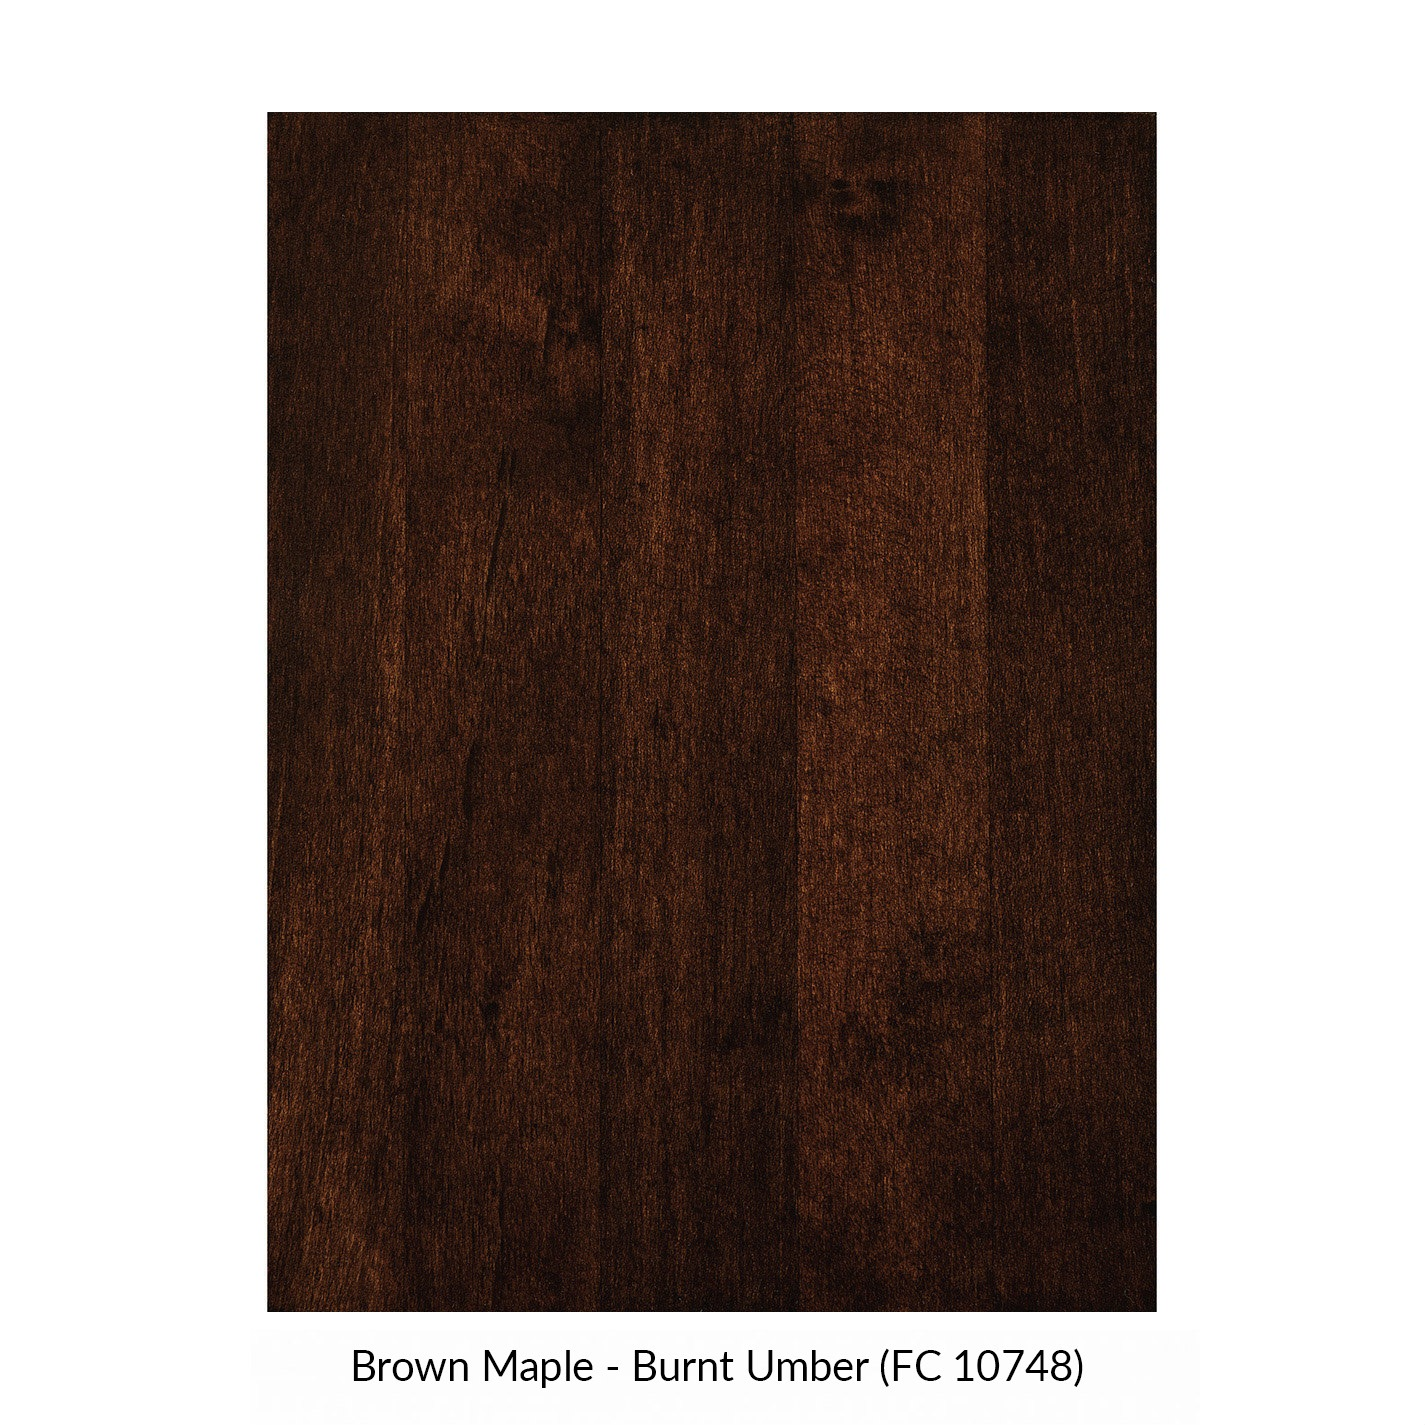 spectrum-brown-maple-burnt-umber-fc-10748.jpg